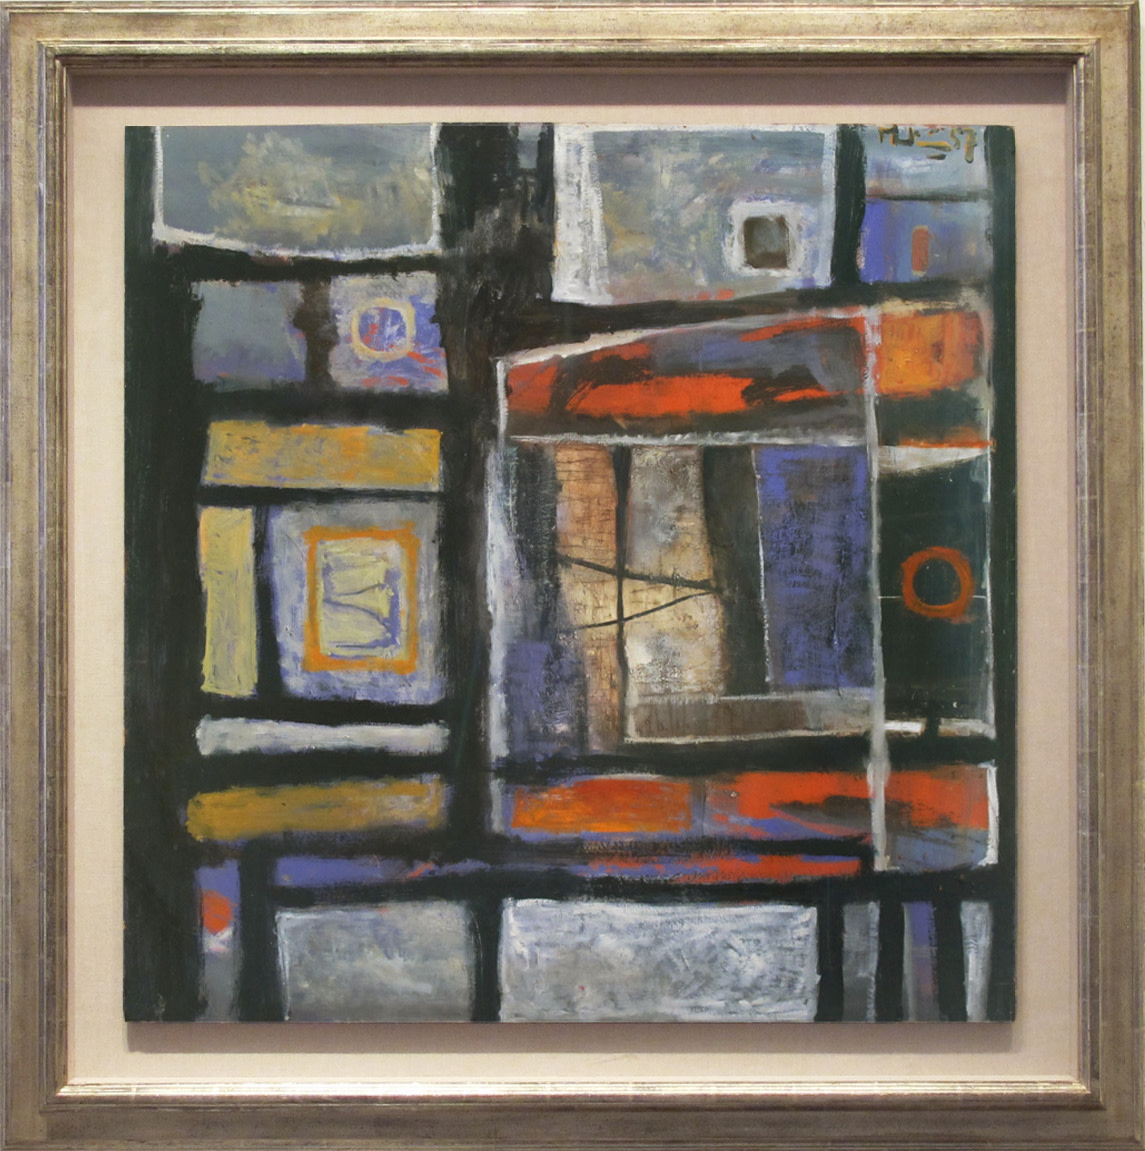 <span class=&#34;link fancybox-details-link&#34;><a href=&#34;/artists/26-martin-bradley/works/25/&#34;>View Detail Page</a></span><div class=&#34;artist&#34;><strong>Martin Bradley</strong></div> Born 1931 <div class=&#34;title&#34;><em>Abstract 1957</em></div> <div class=&#34;signed_and_dated&#34;>signed and dated 1957</div> <div class=&#34;medium&#34;>oil on board</div> <div class=&#34;dimensions&#34;>81.5 x 81.5 cms (32 x 32 ins)<br /> framed: 105.5 x 105.5 cms (41.5 x 41.5 ins)</div>